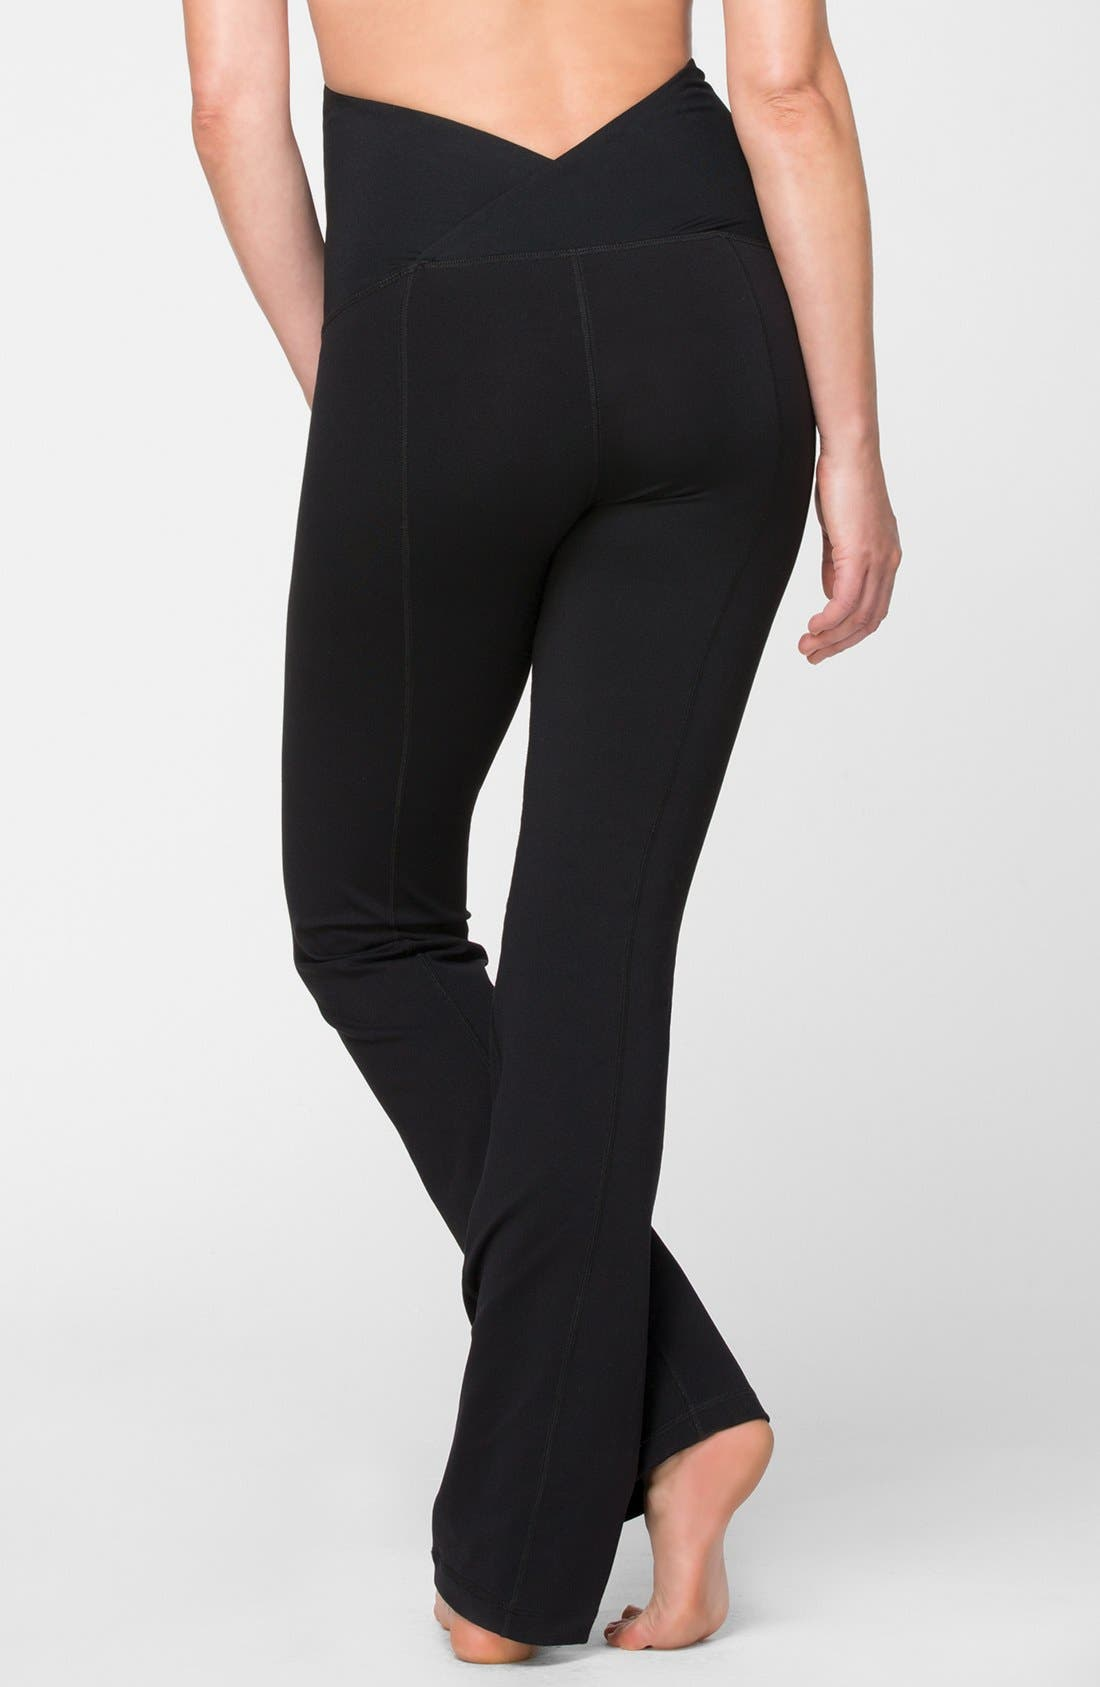 Active Maternity Pants with Crossover Panel,                             Alternate thumbnail 2, color,                             Jet Black